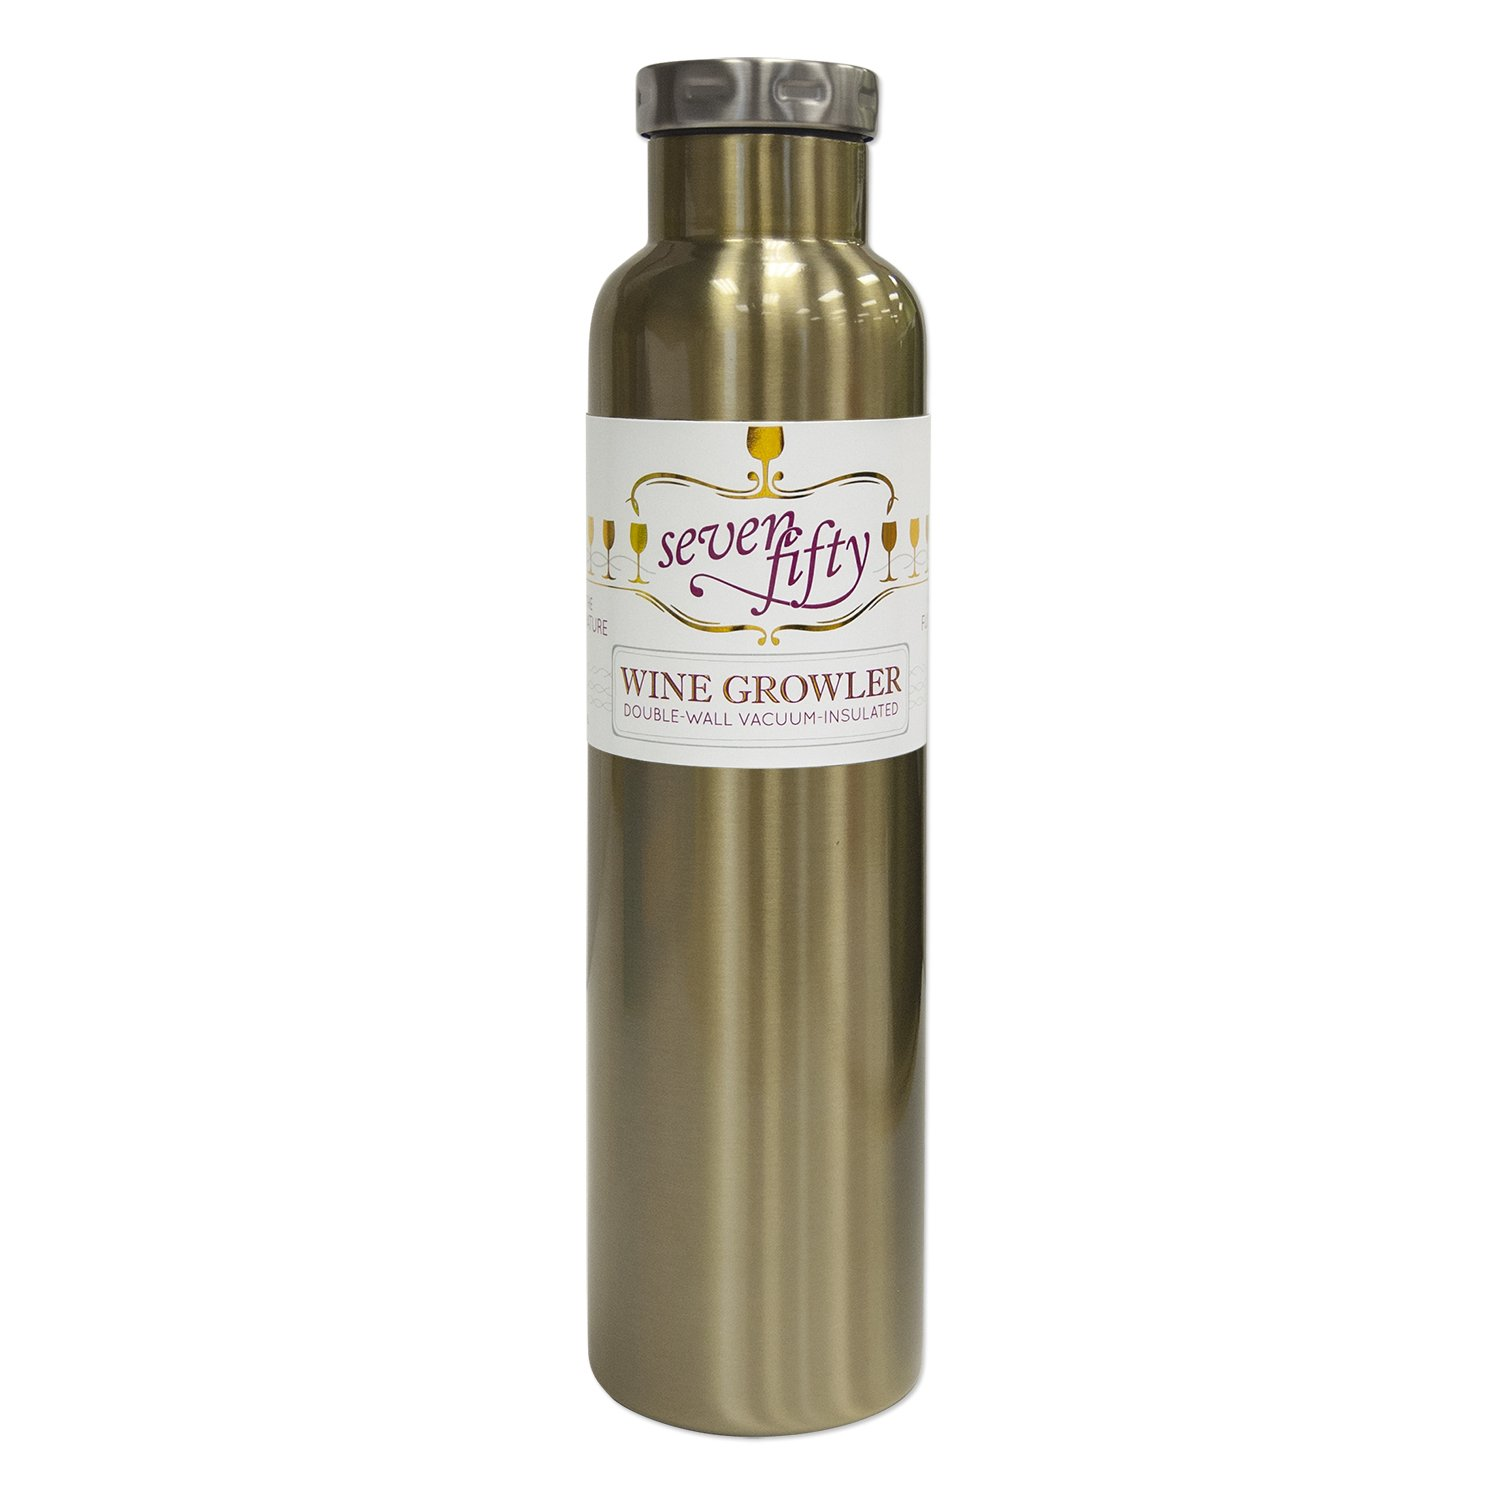 Lifeline 7512GO Gold Stainless Steel Vacuum Insulated Double Wall Bottle Style Growler - 750ml. Capacity